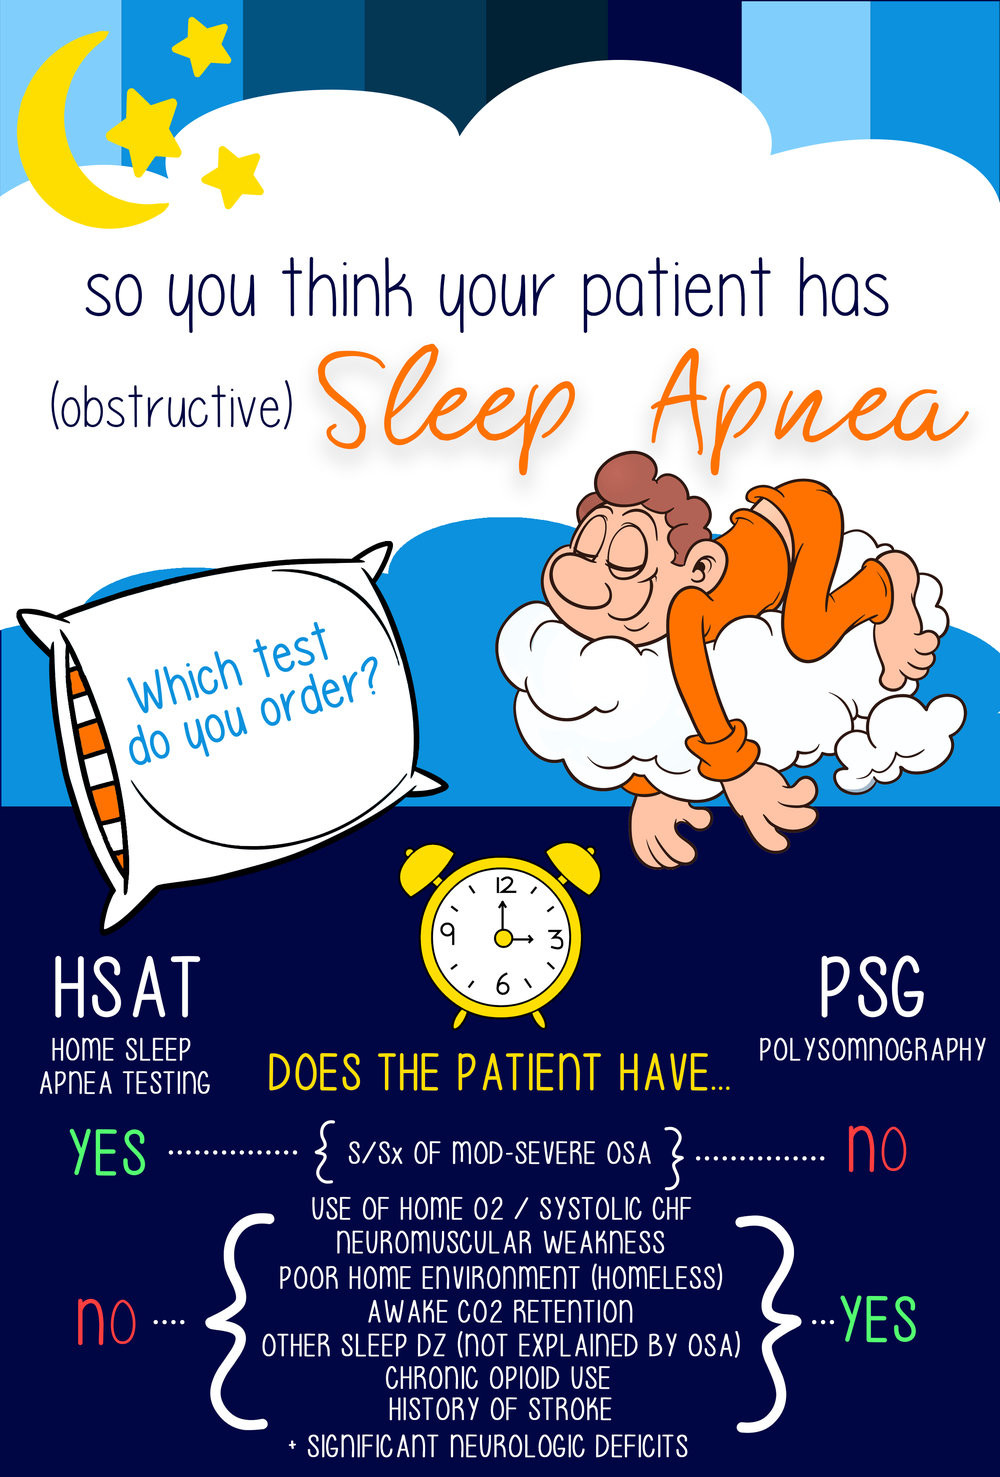 SLEEP APNEA.jpg